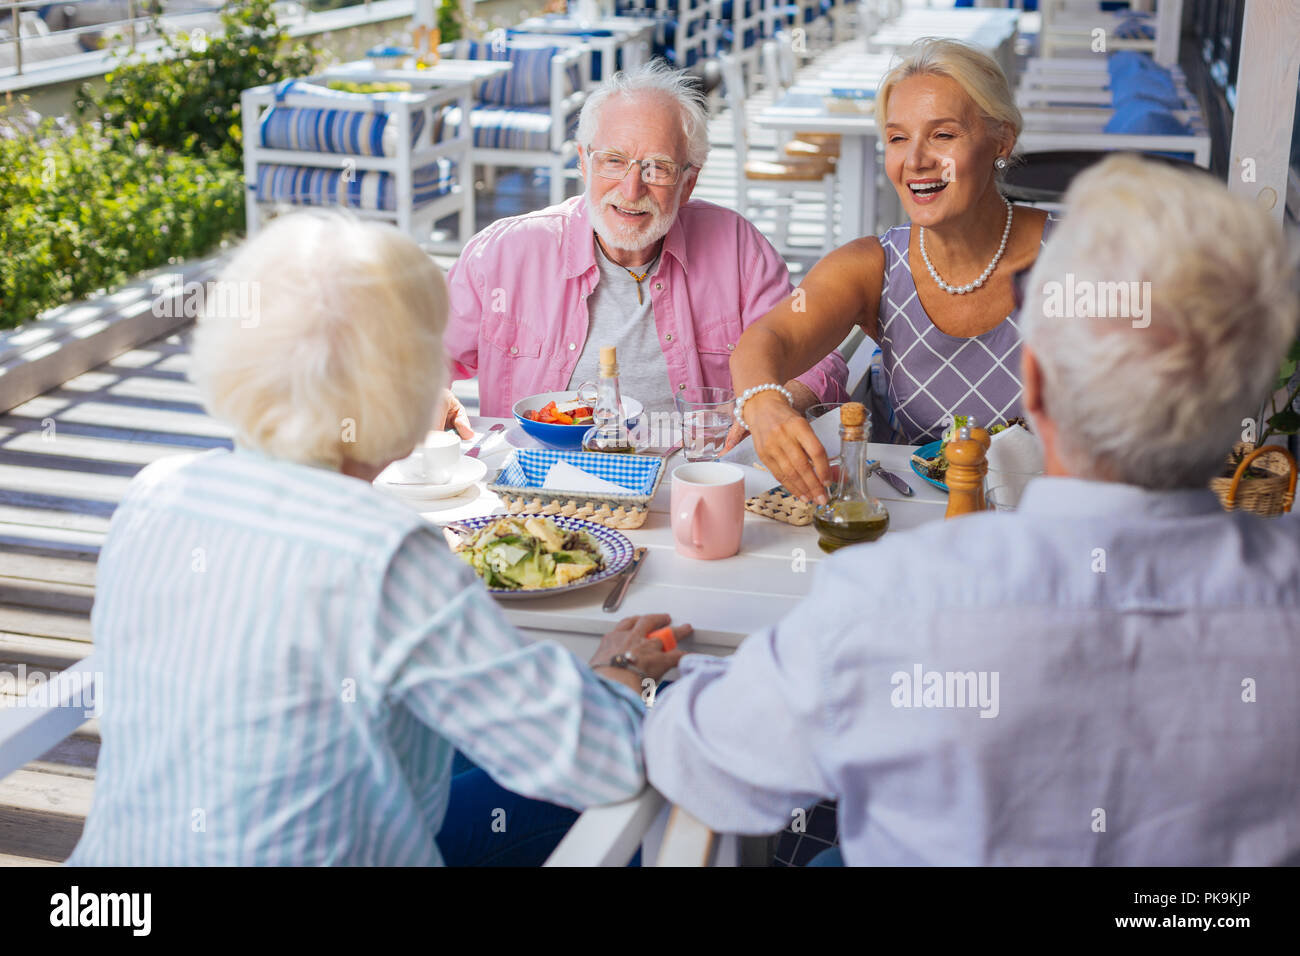 Delighted elderly people enjoying their time together - Stock Image